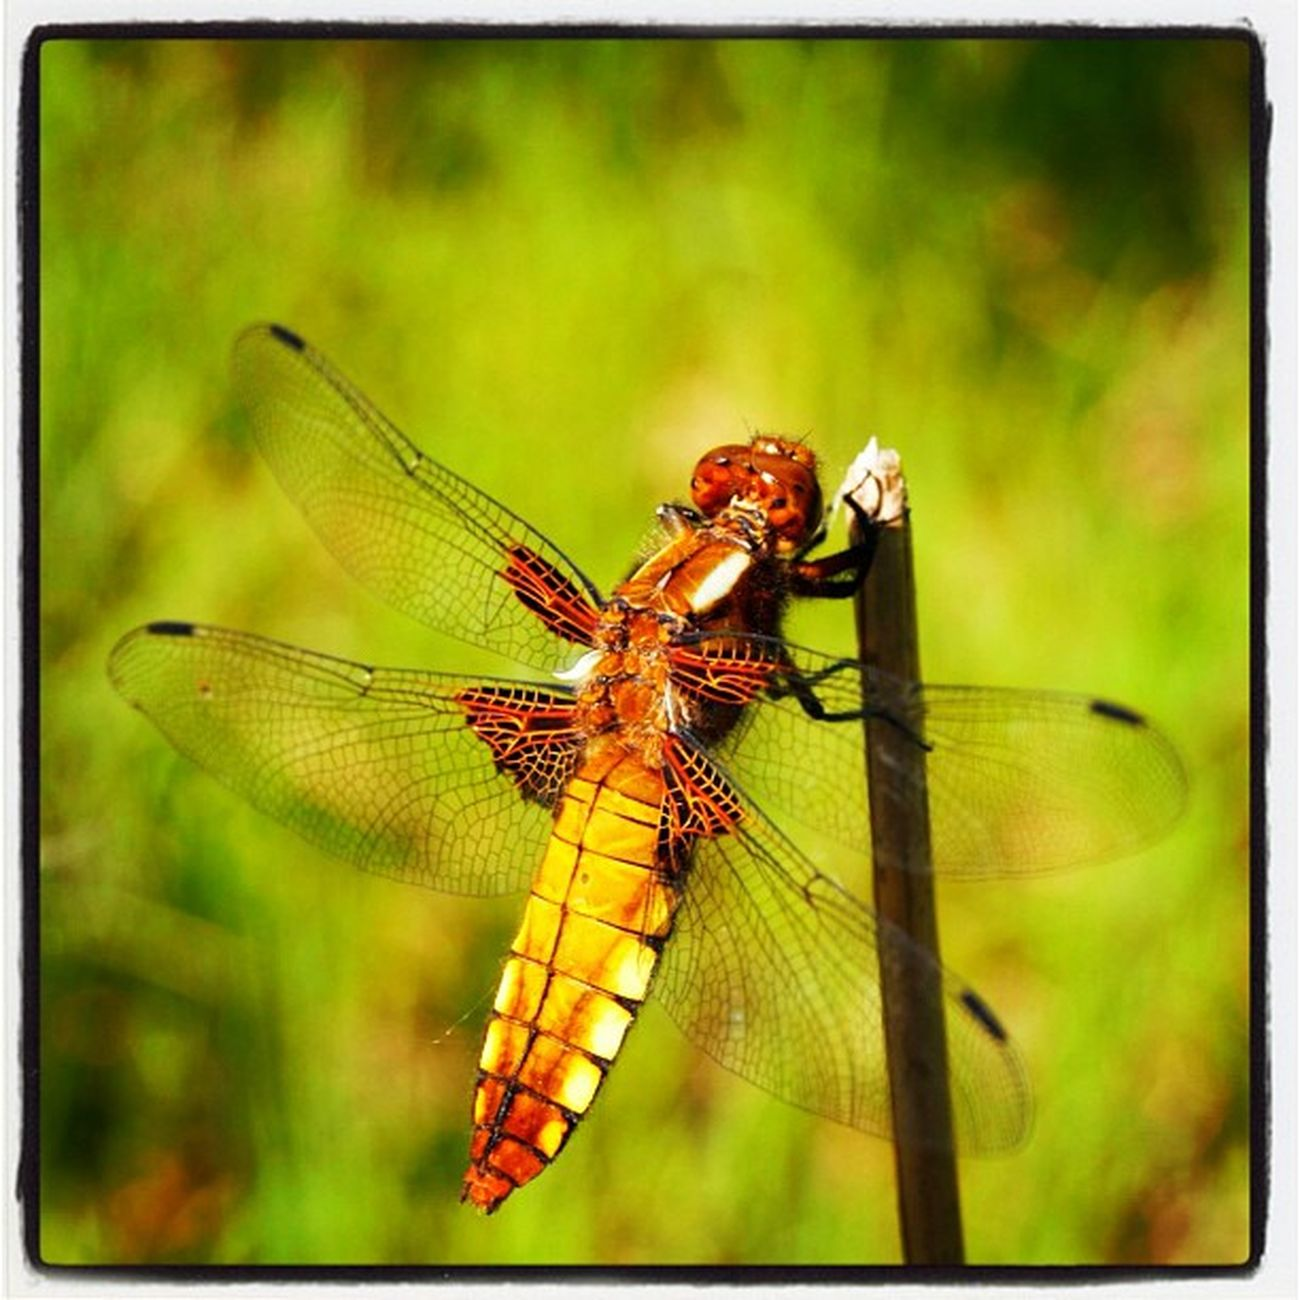 Libelle Dragonfly Ig_nature Insect nature